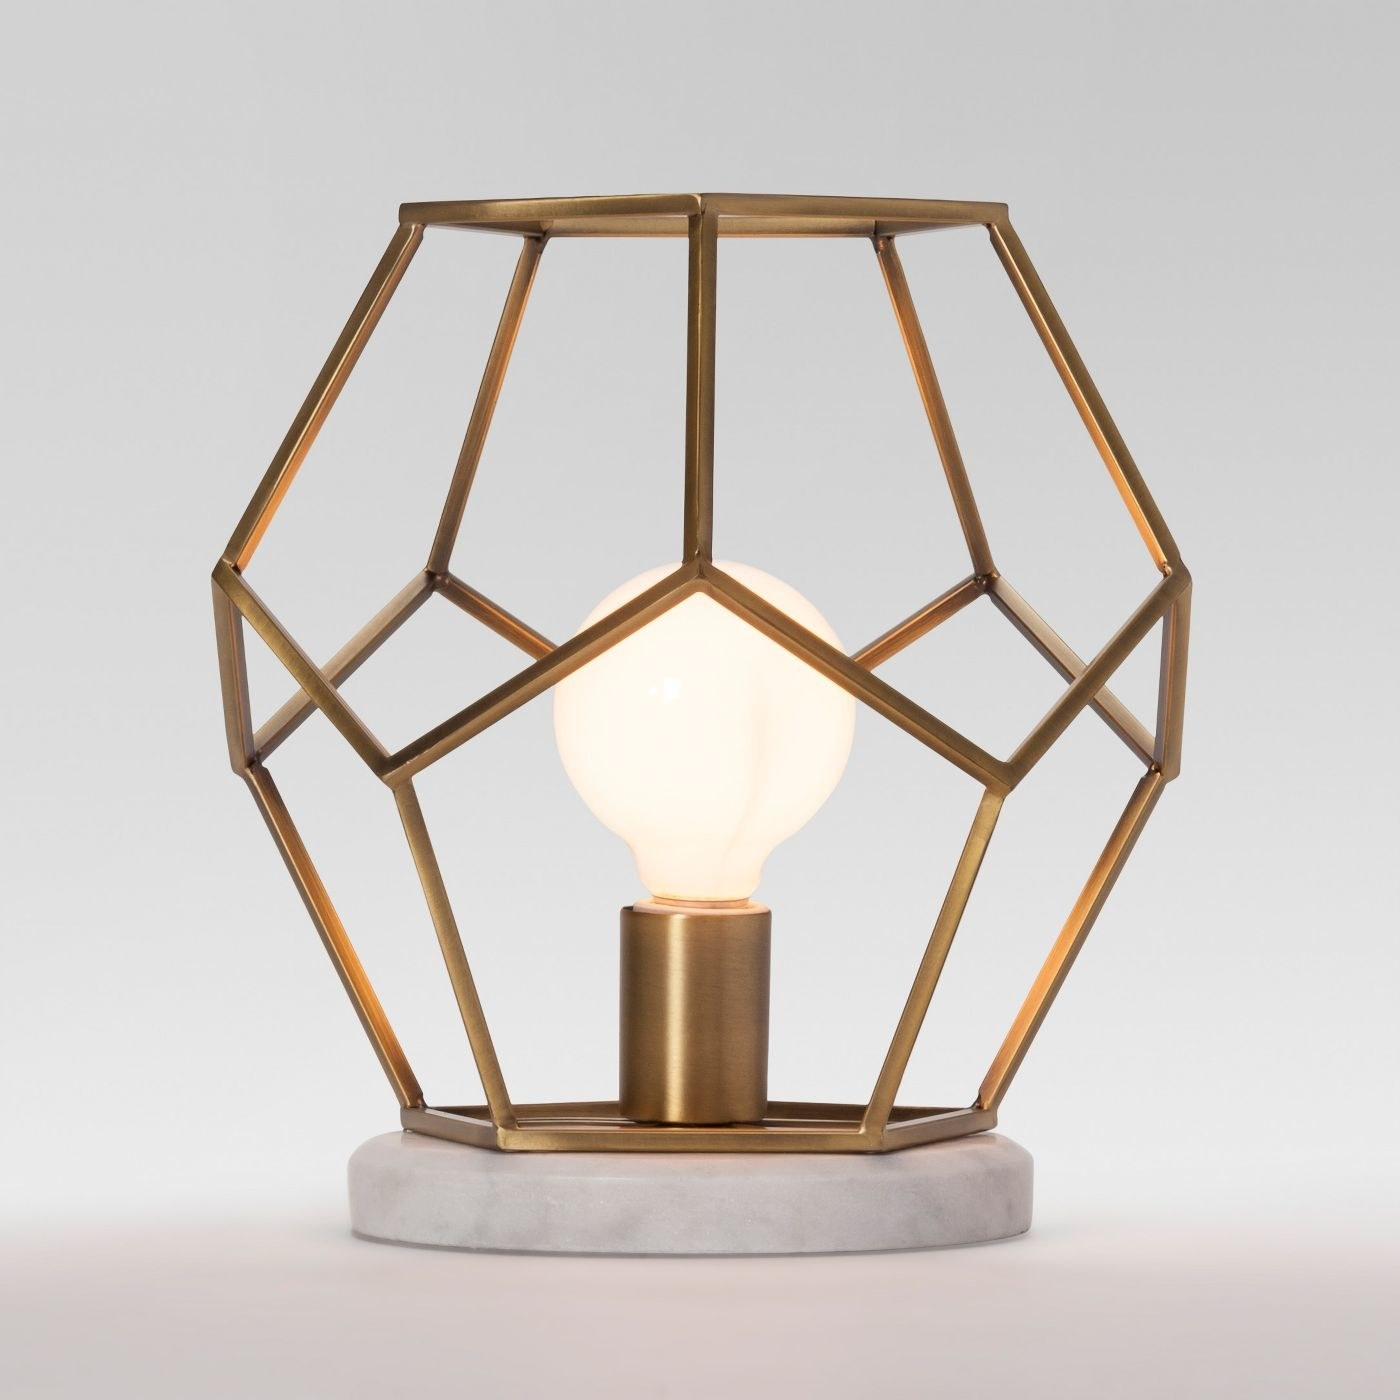 The lamp, which has a circular faux marble base, and a geometric brass-tone cage as a shade, leaving the bulb visible